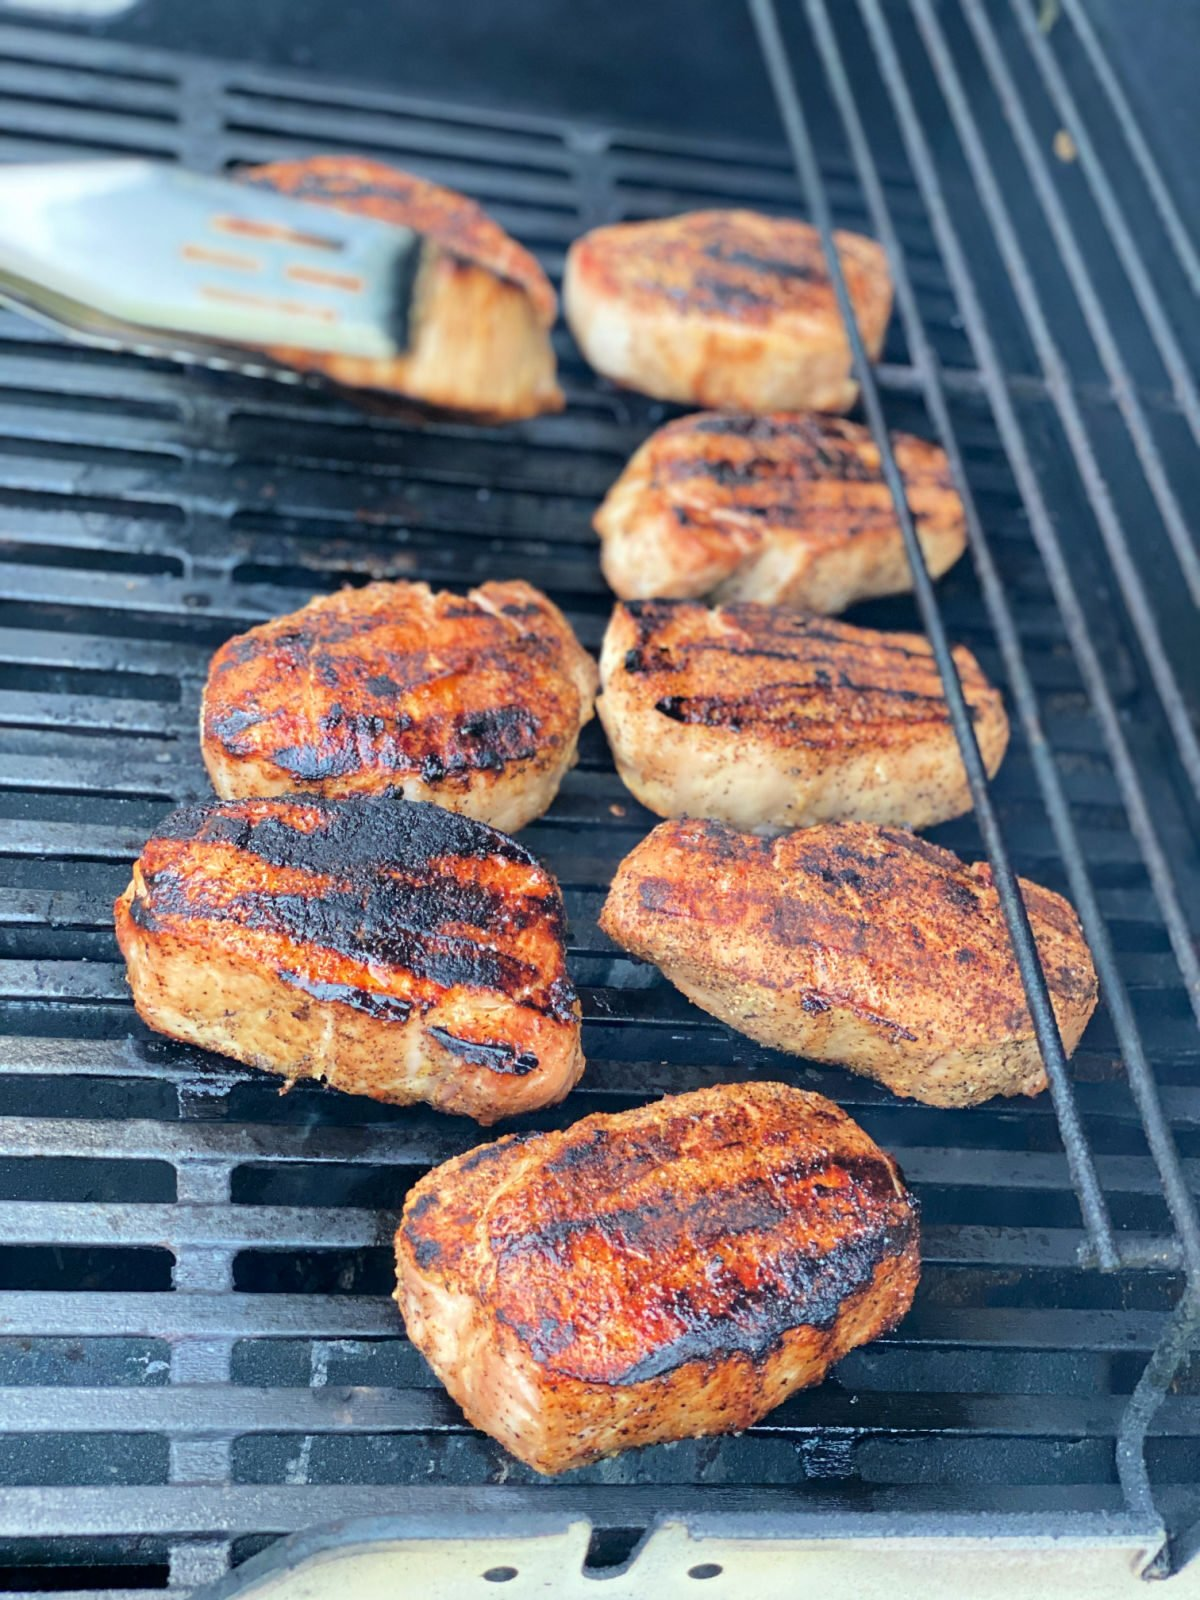 Nine pork chops cooking on a gas grill.